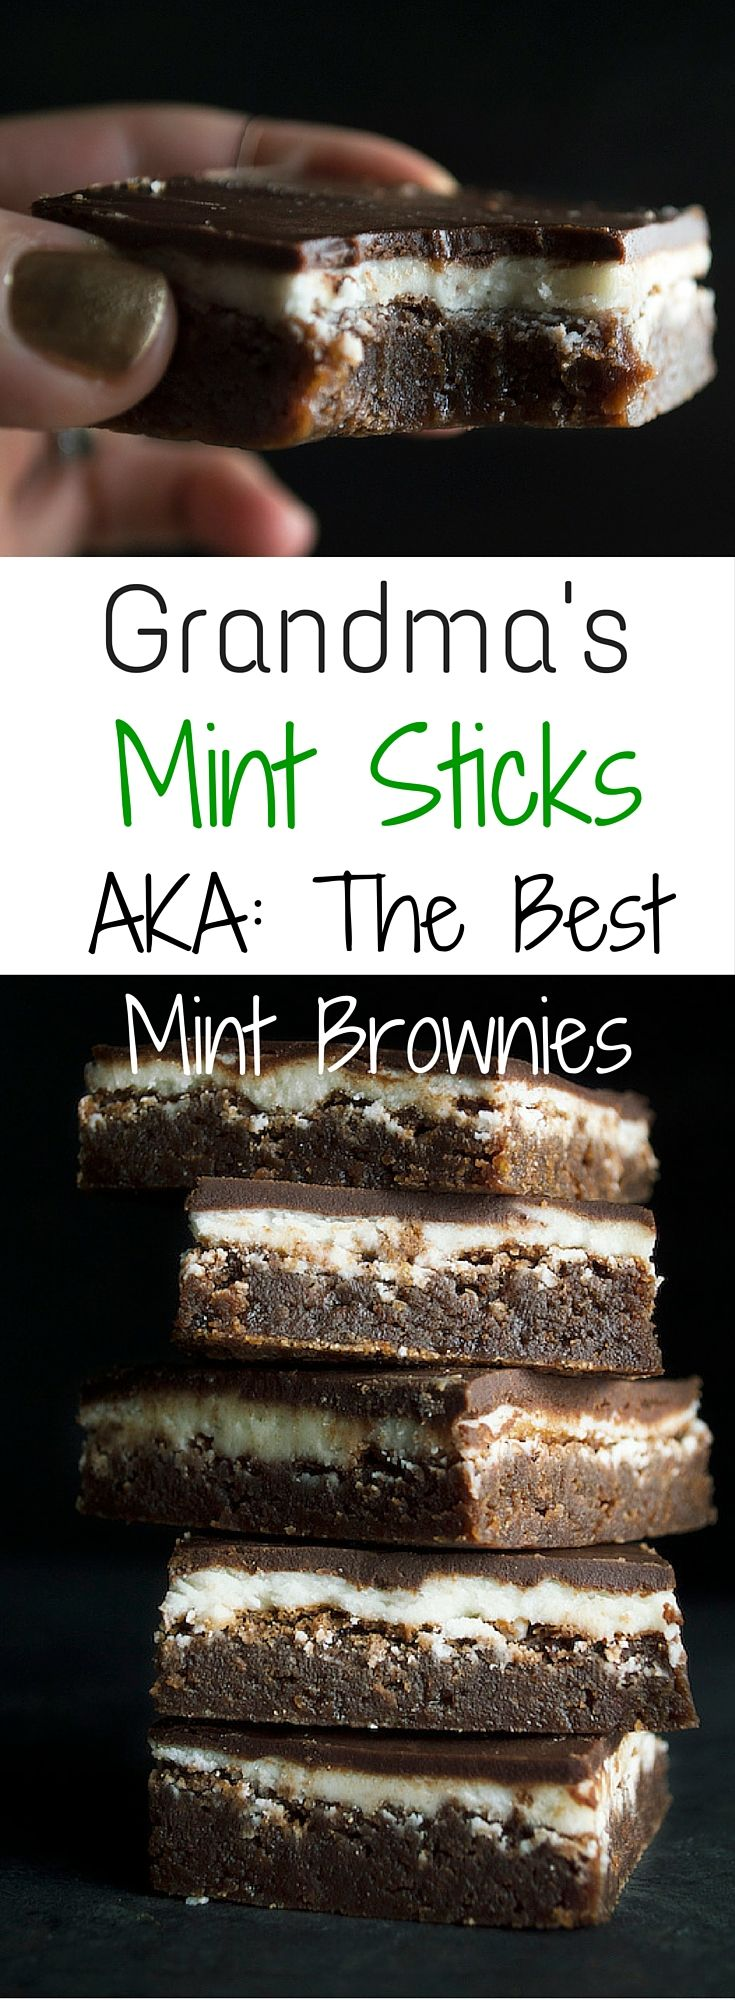 These mint brownies are famous! They are so delicious you will never be able to eat any other mint brownies.